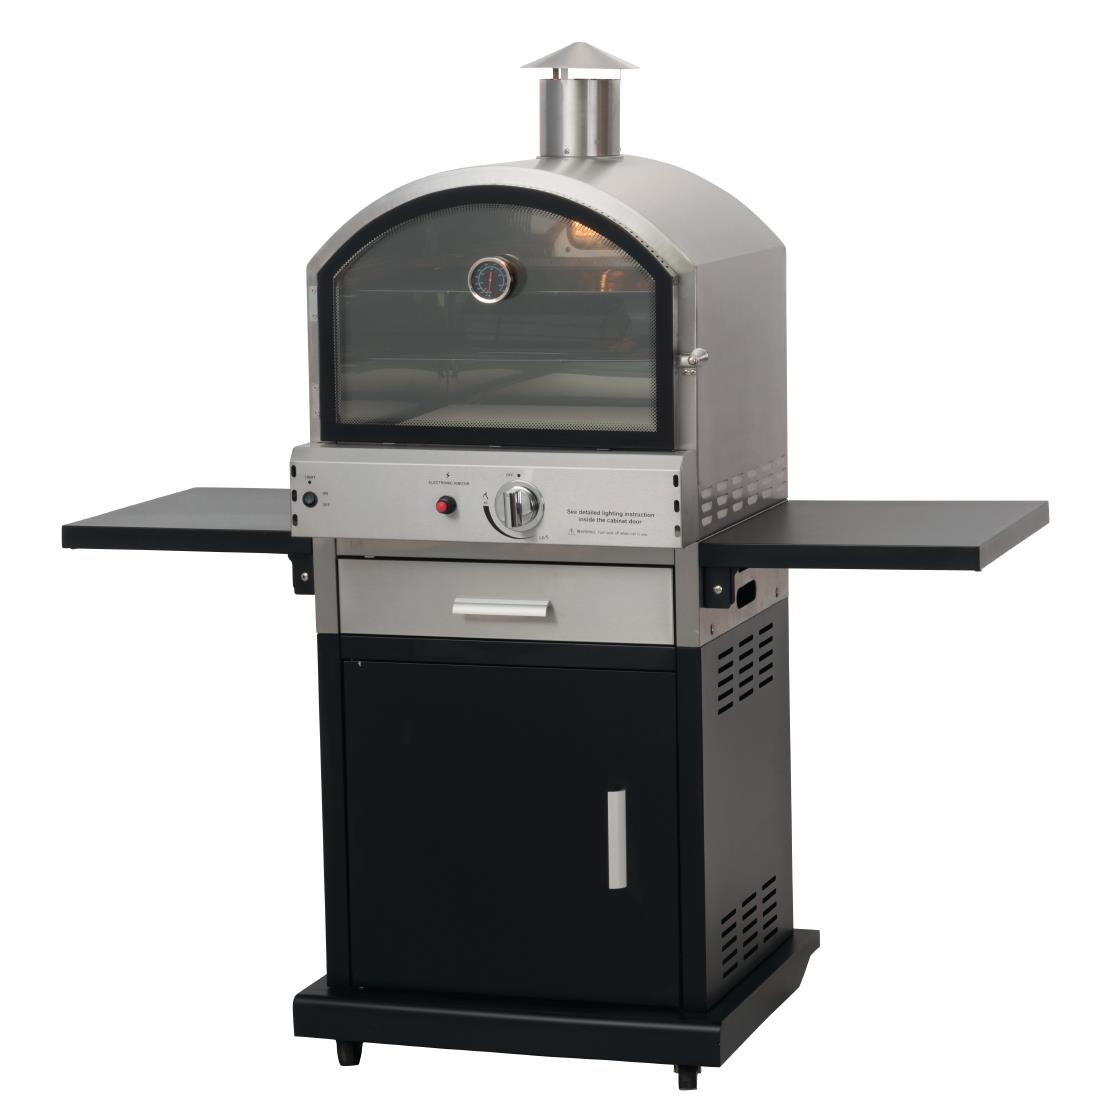 Lifestyle Verona Gas BBQ Pizza Oven LFS691